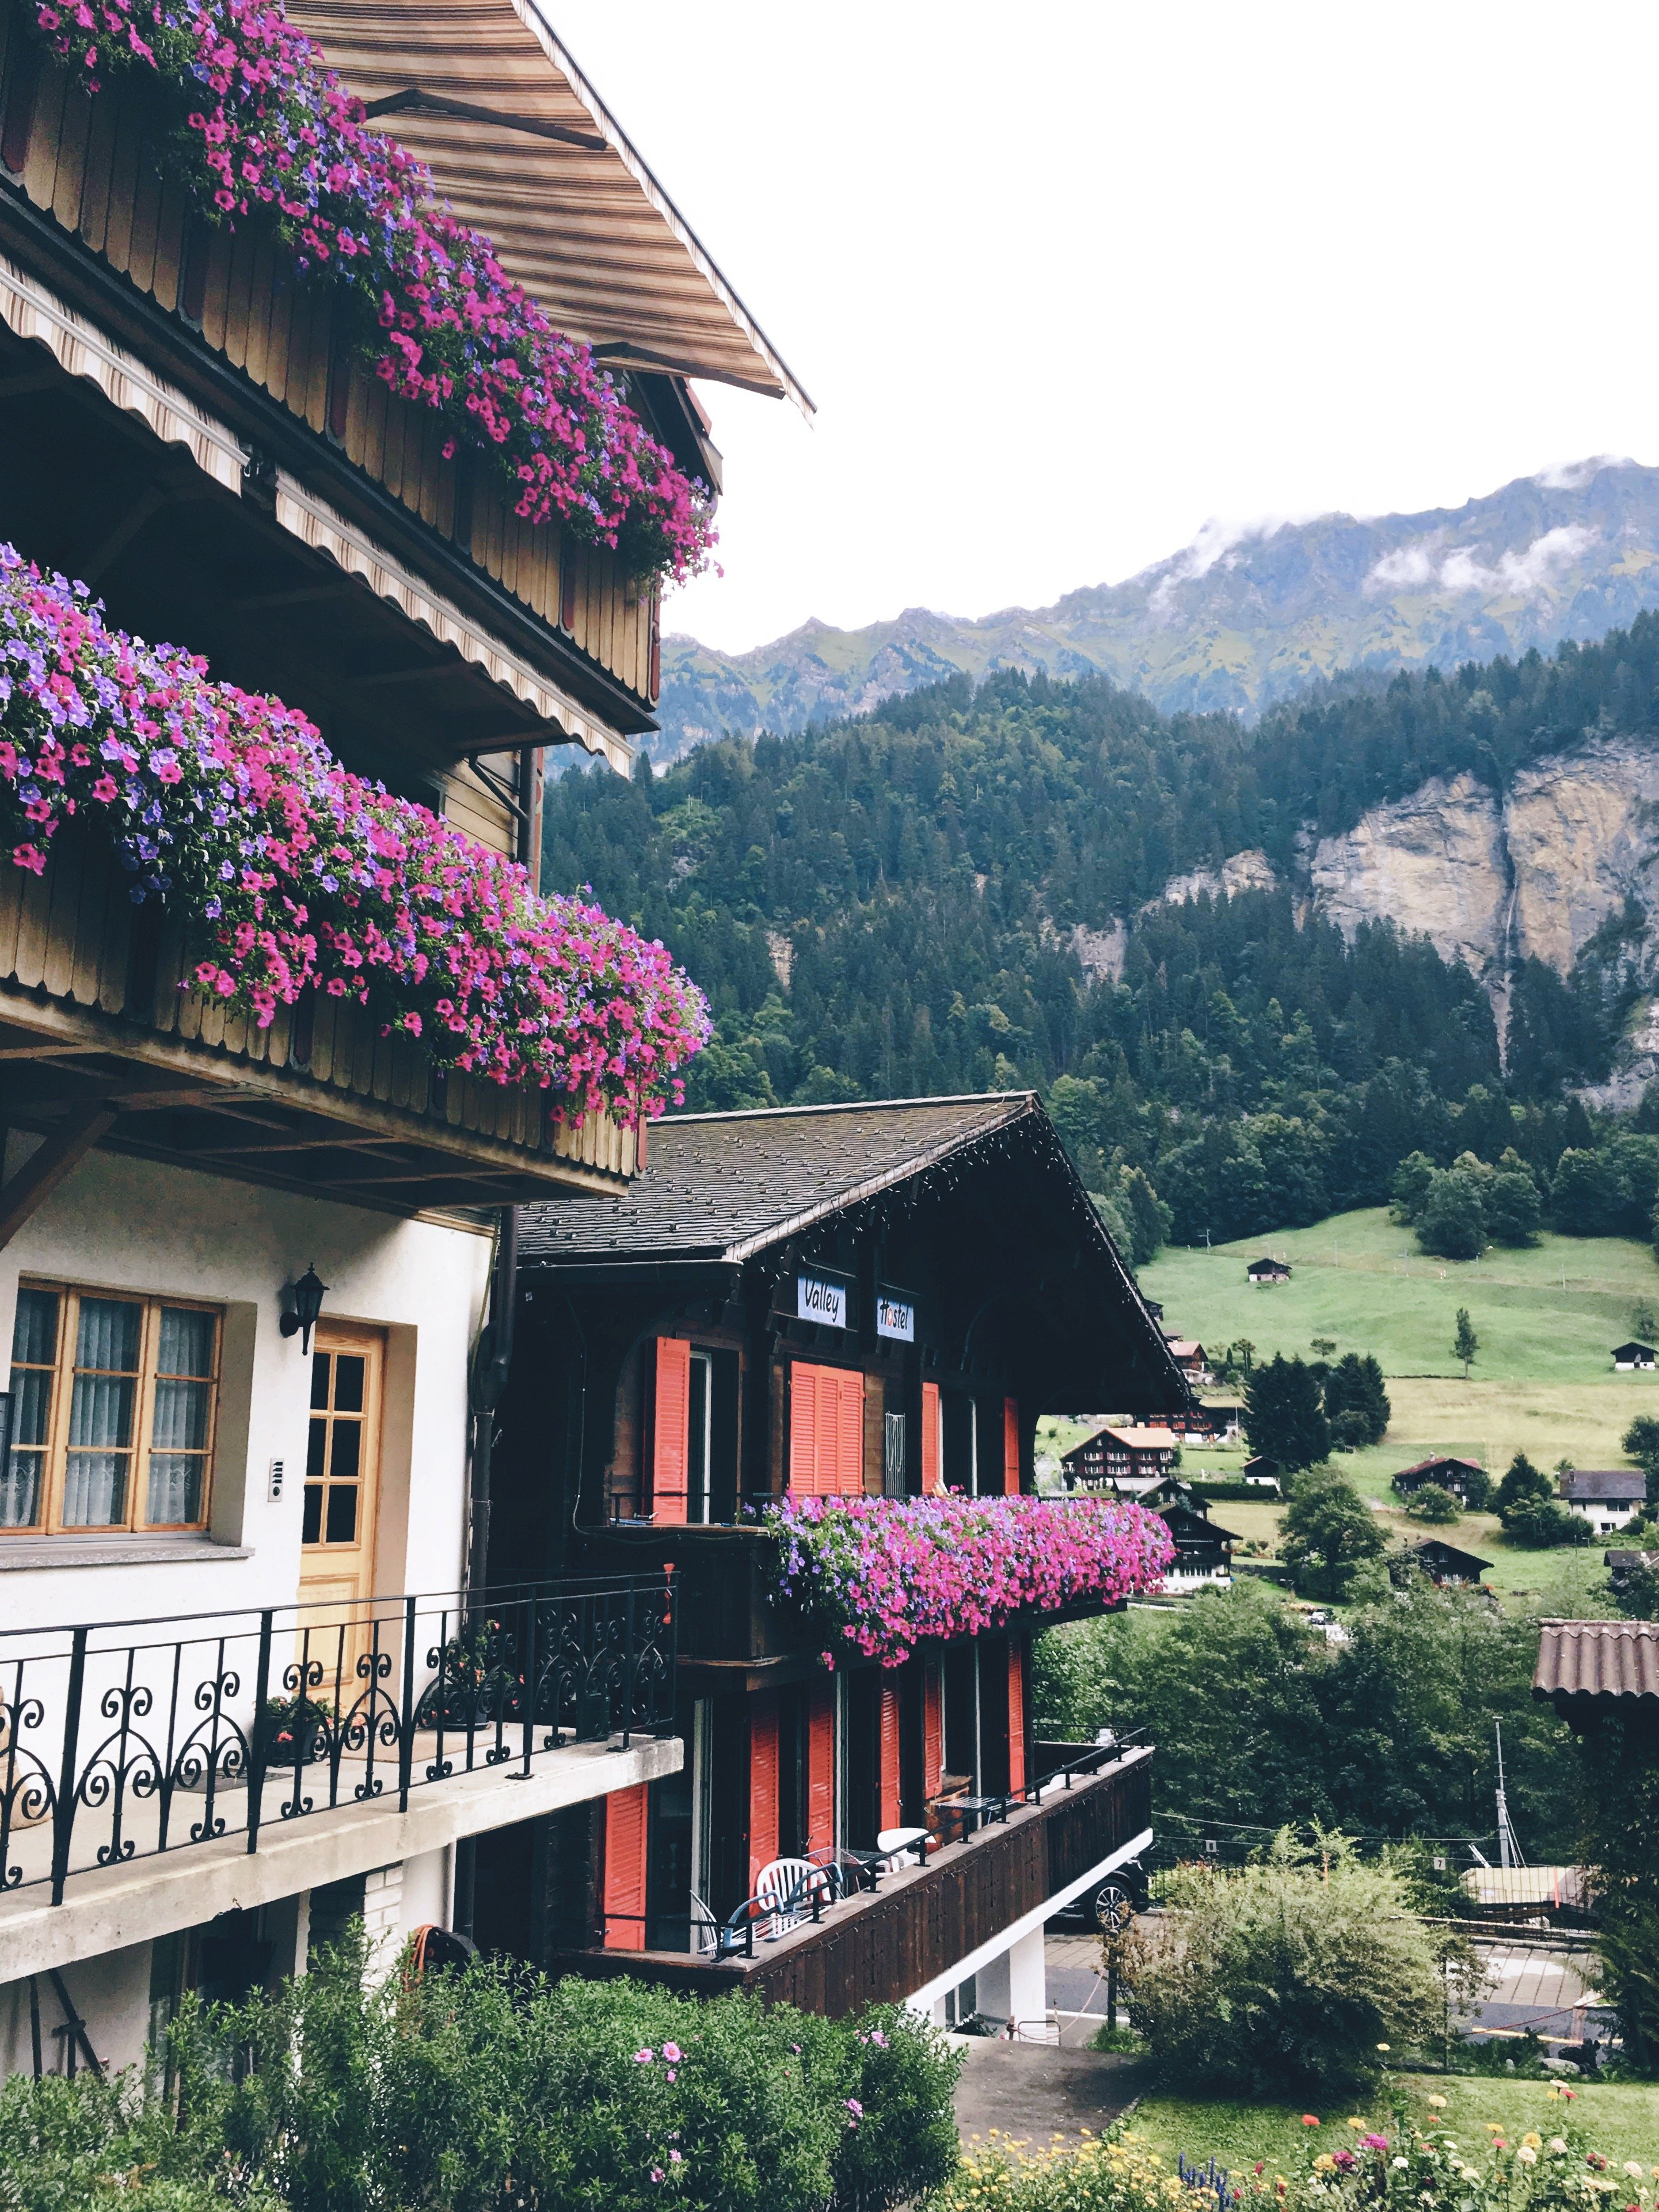 Survival Guide to Hostels for Introverts. Travel tips for introverts and long-term travelers in hostels. Hostel tips for introverts. How to travel in hostels as an introvert. Tips for choosing hostels as an introvert. Best hostels for introverts. Lauterbrunnen, Switzerland.